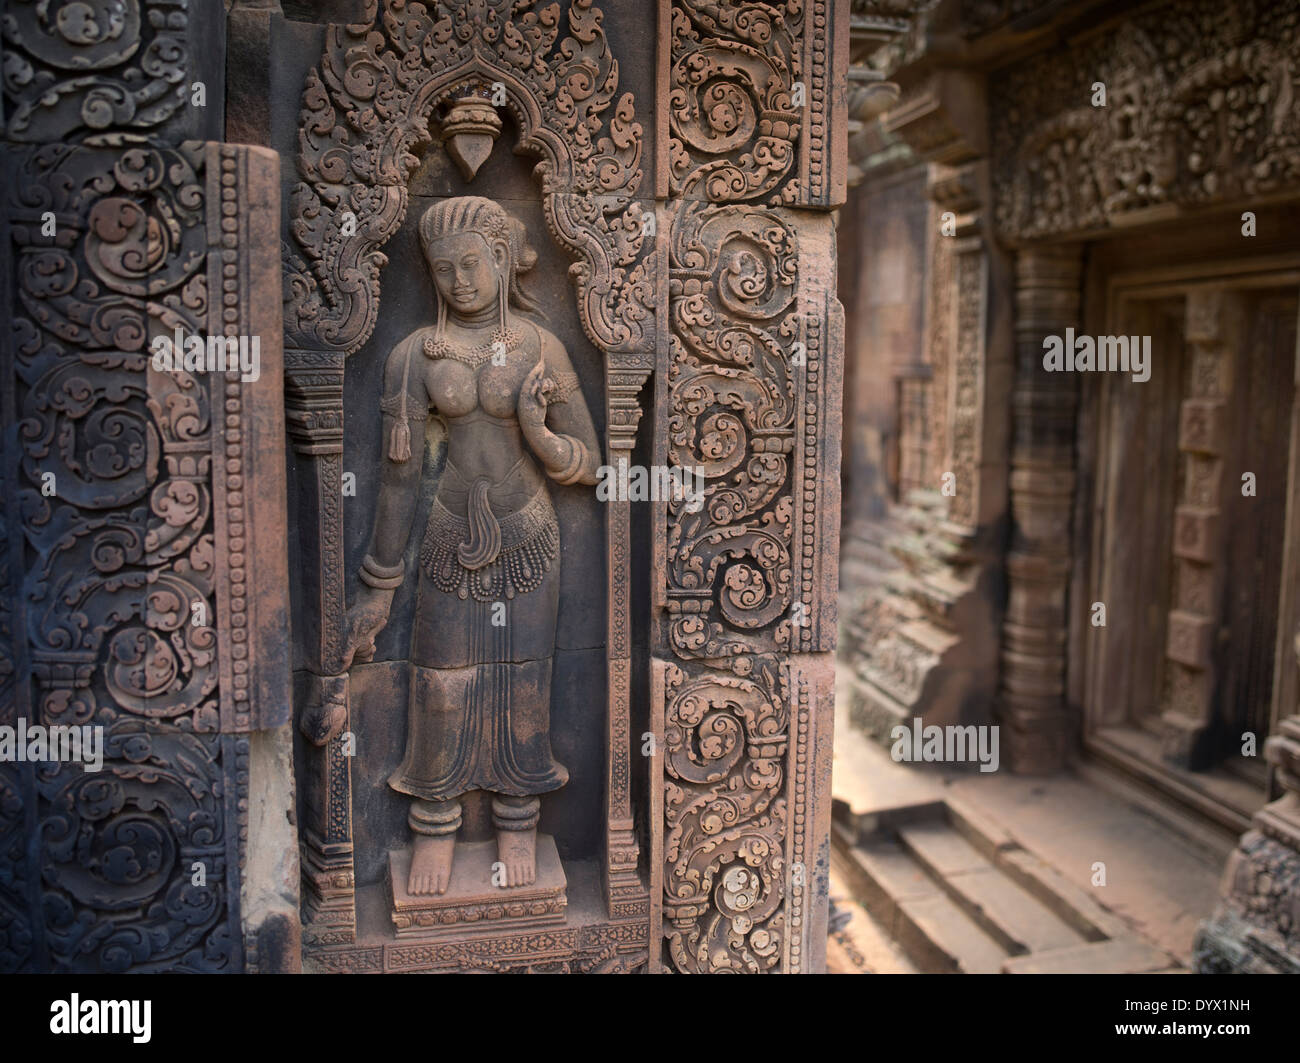 Banteay Srei Hindu Temple dedicated to Shiva. Siem Reap, Cambodia - Stock Image